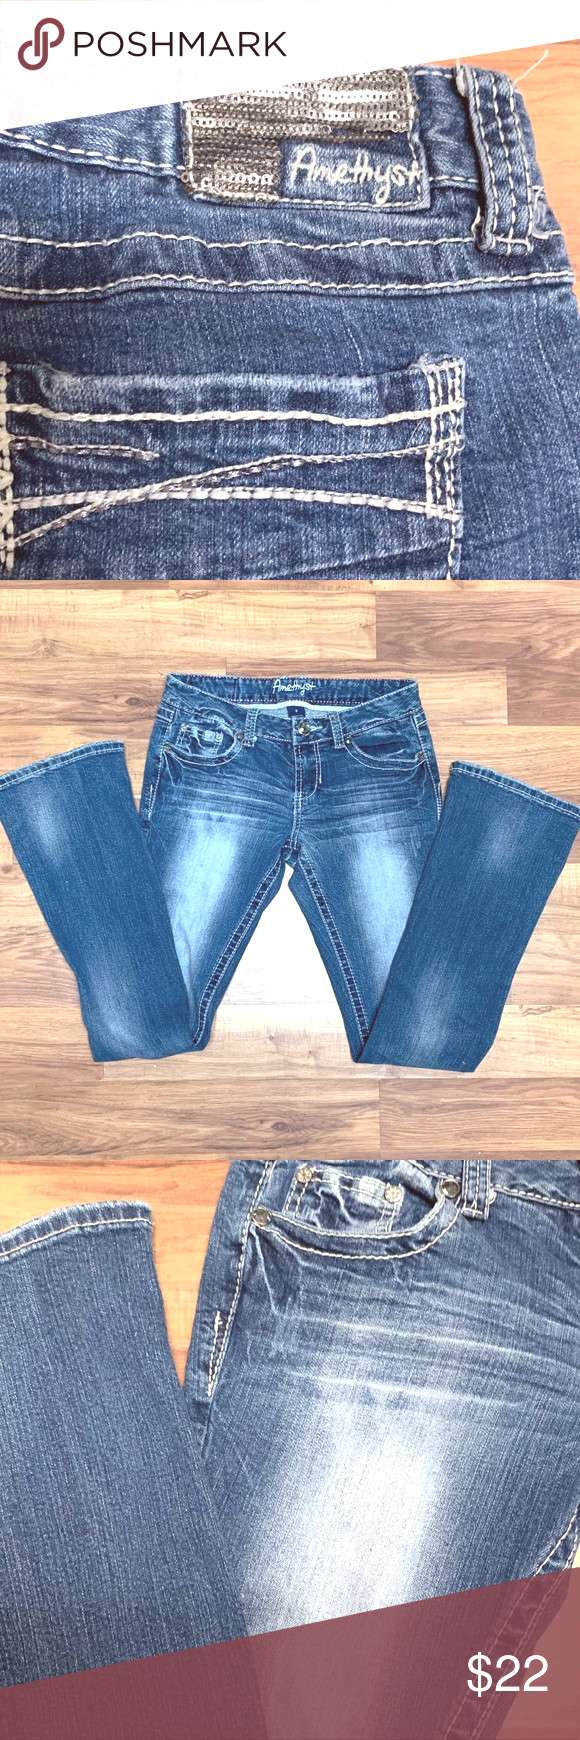 Amethyst Size 9 Junior Jeans with Silver Sequins Amethyst Size 9 Junior Jeans with Silver Sequins.